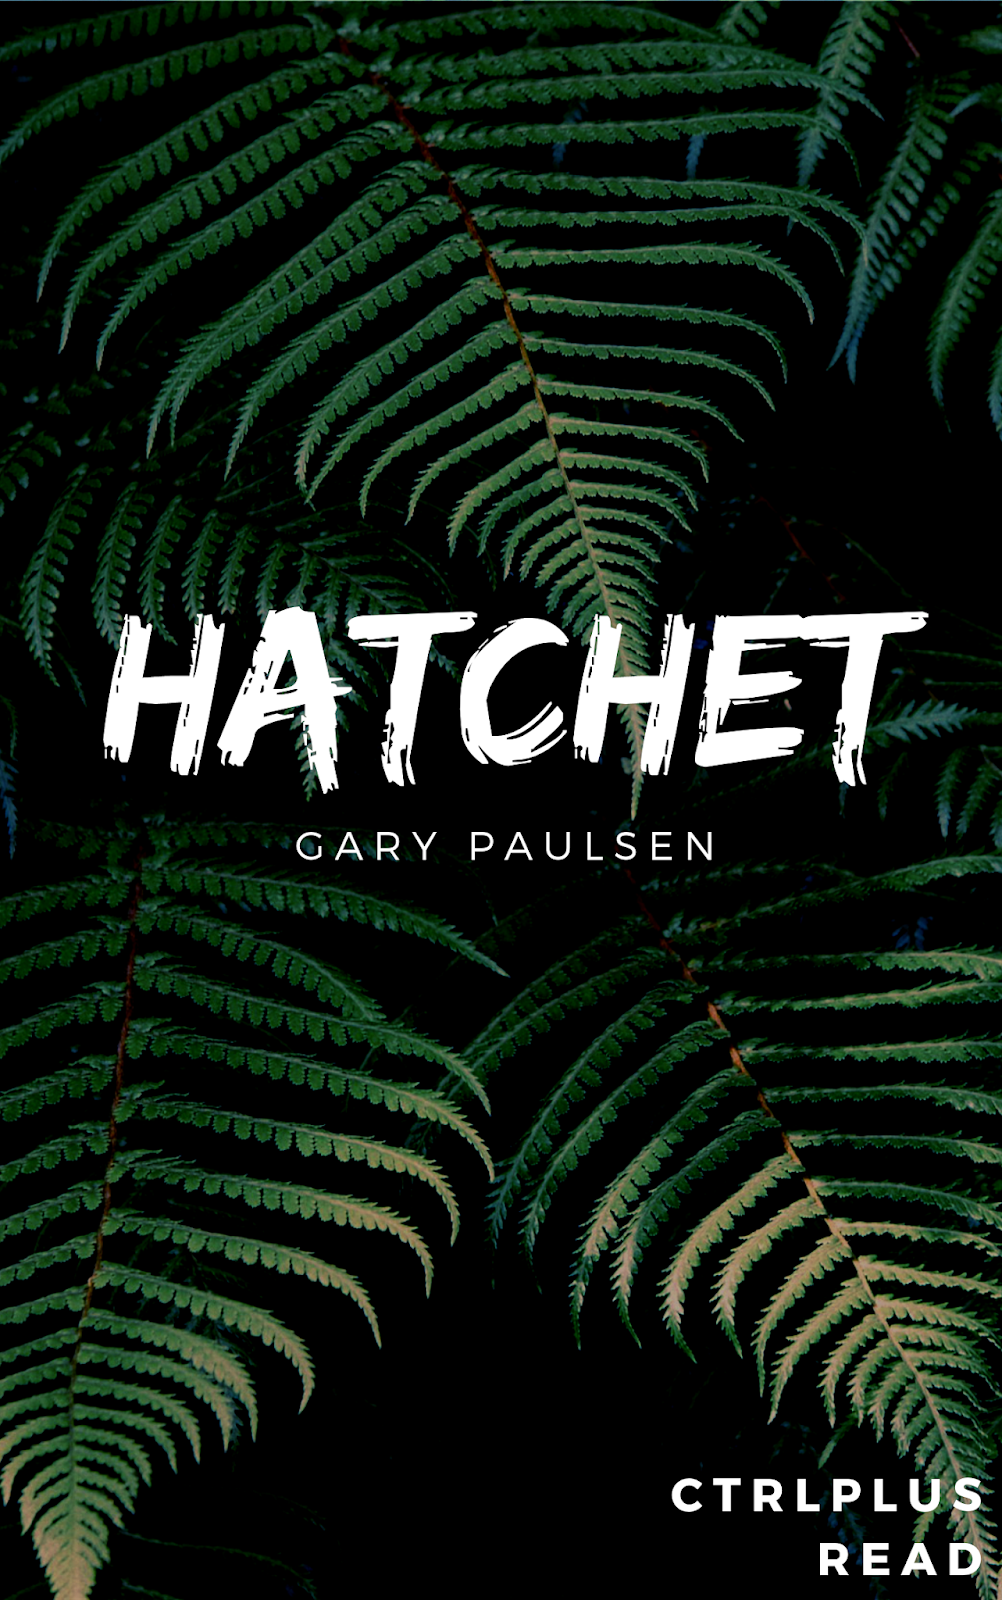 hatchet,book,hatchet (book),hatchet book,hatchet book review,hatchet movie,book trailer,book review,hatchet book online,batchet book movie,the hatchet book,hatchet the book,hatchet book report,hatchet book summary,the hatchet,book hatchet,hatchet audiobook,hatchet full movie,hatchet trailer,hatchet review,hatchet:,hatchet summary,hatchet by gary paulsen,hatchet gary paulsen,best books,summary of hatchet